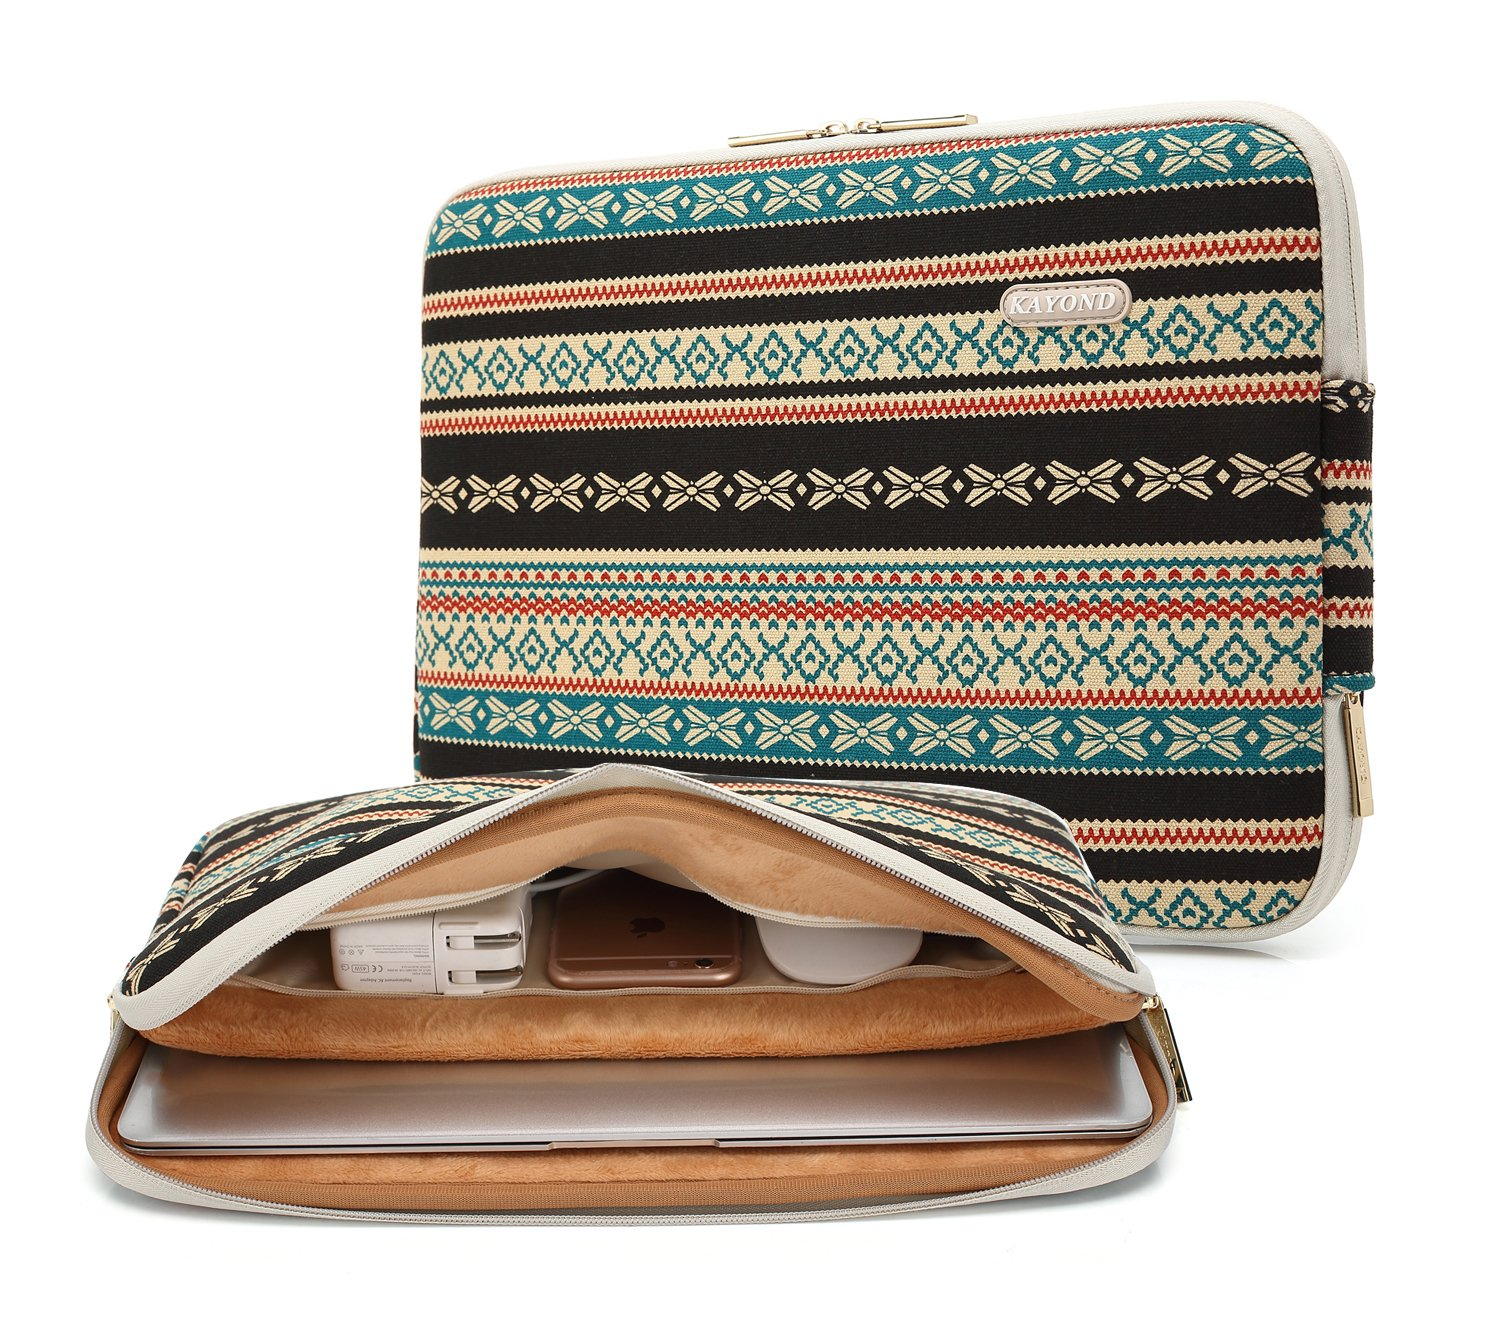 Kayond Canvas Water Resistant 15 15 6 Bohemian